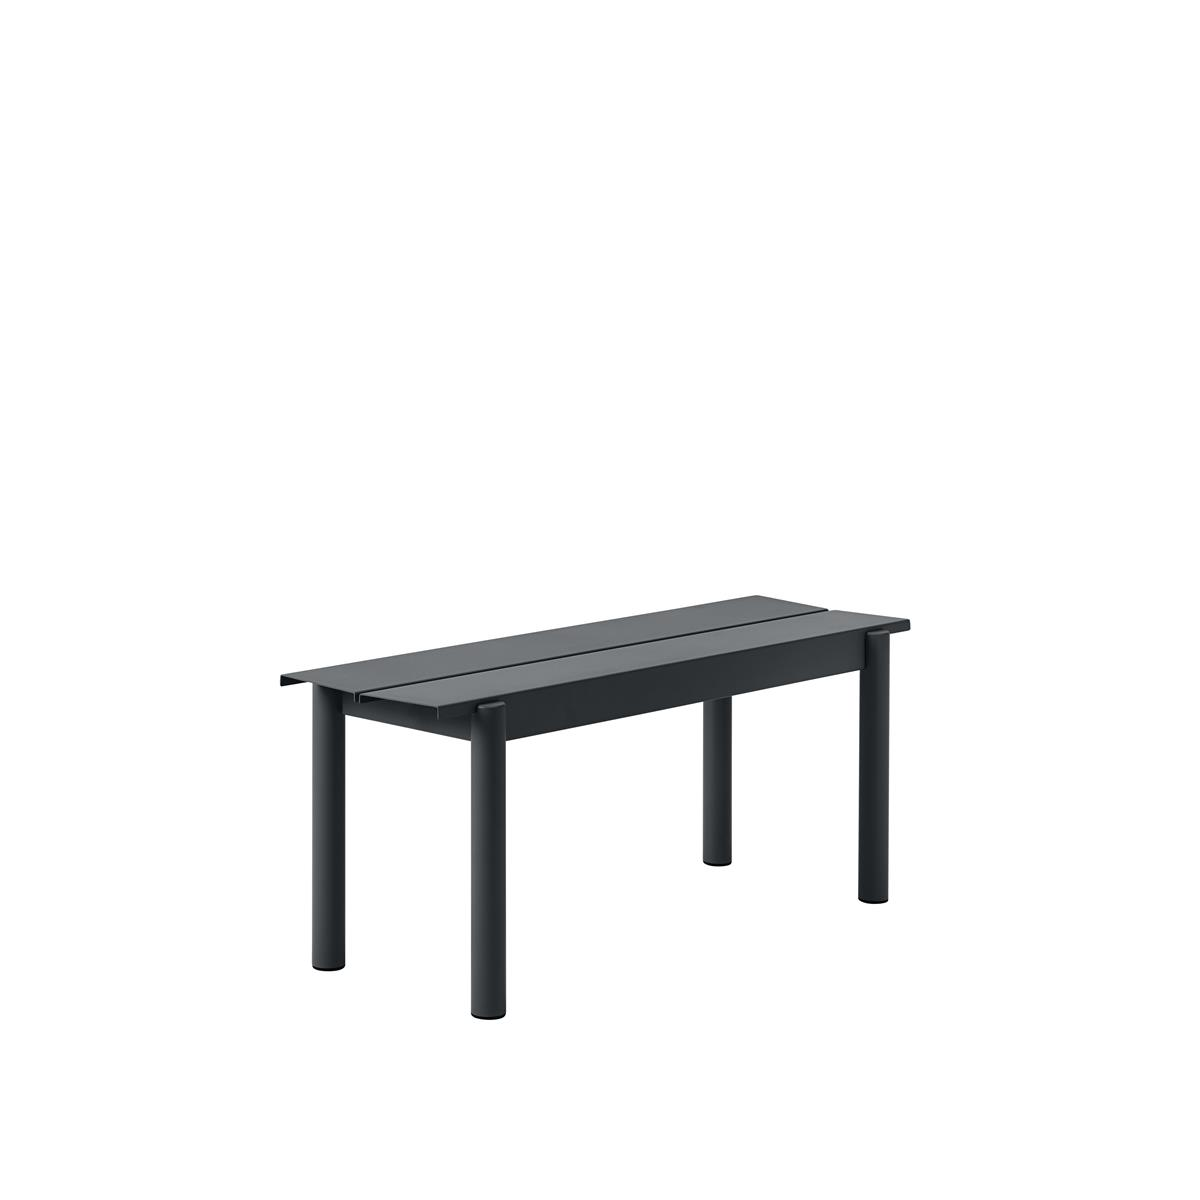 Linear Steel Bench 110 x H45,5 - Black